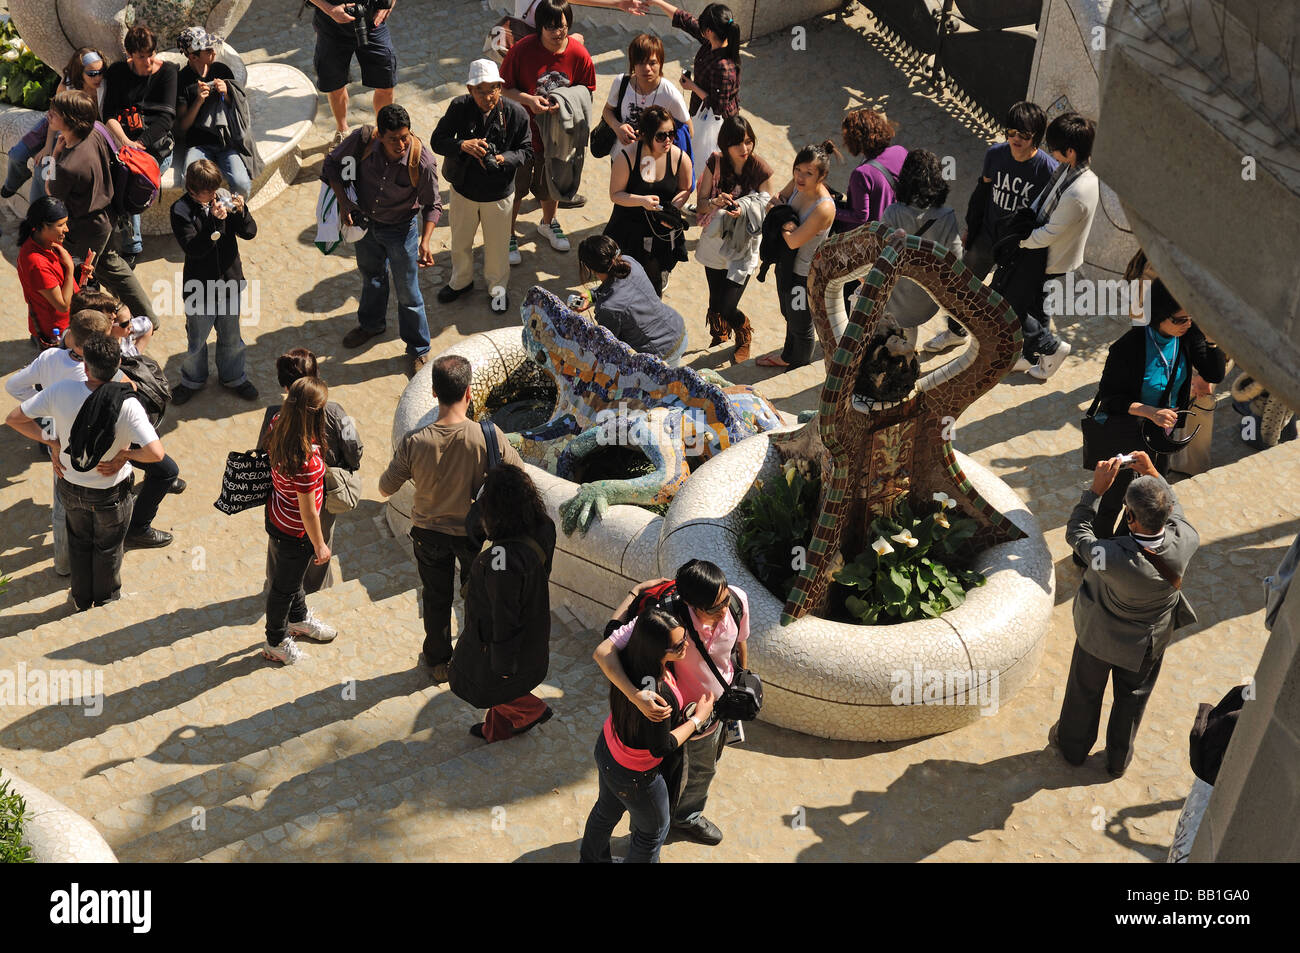 Tourists in Parc Güell, Barcelona Spain - Stock Image